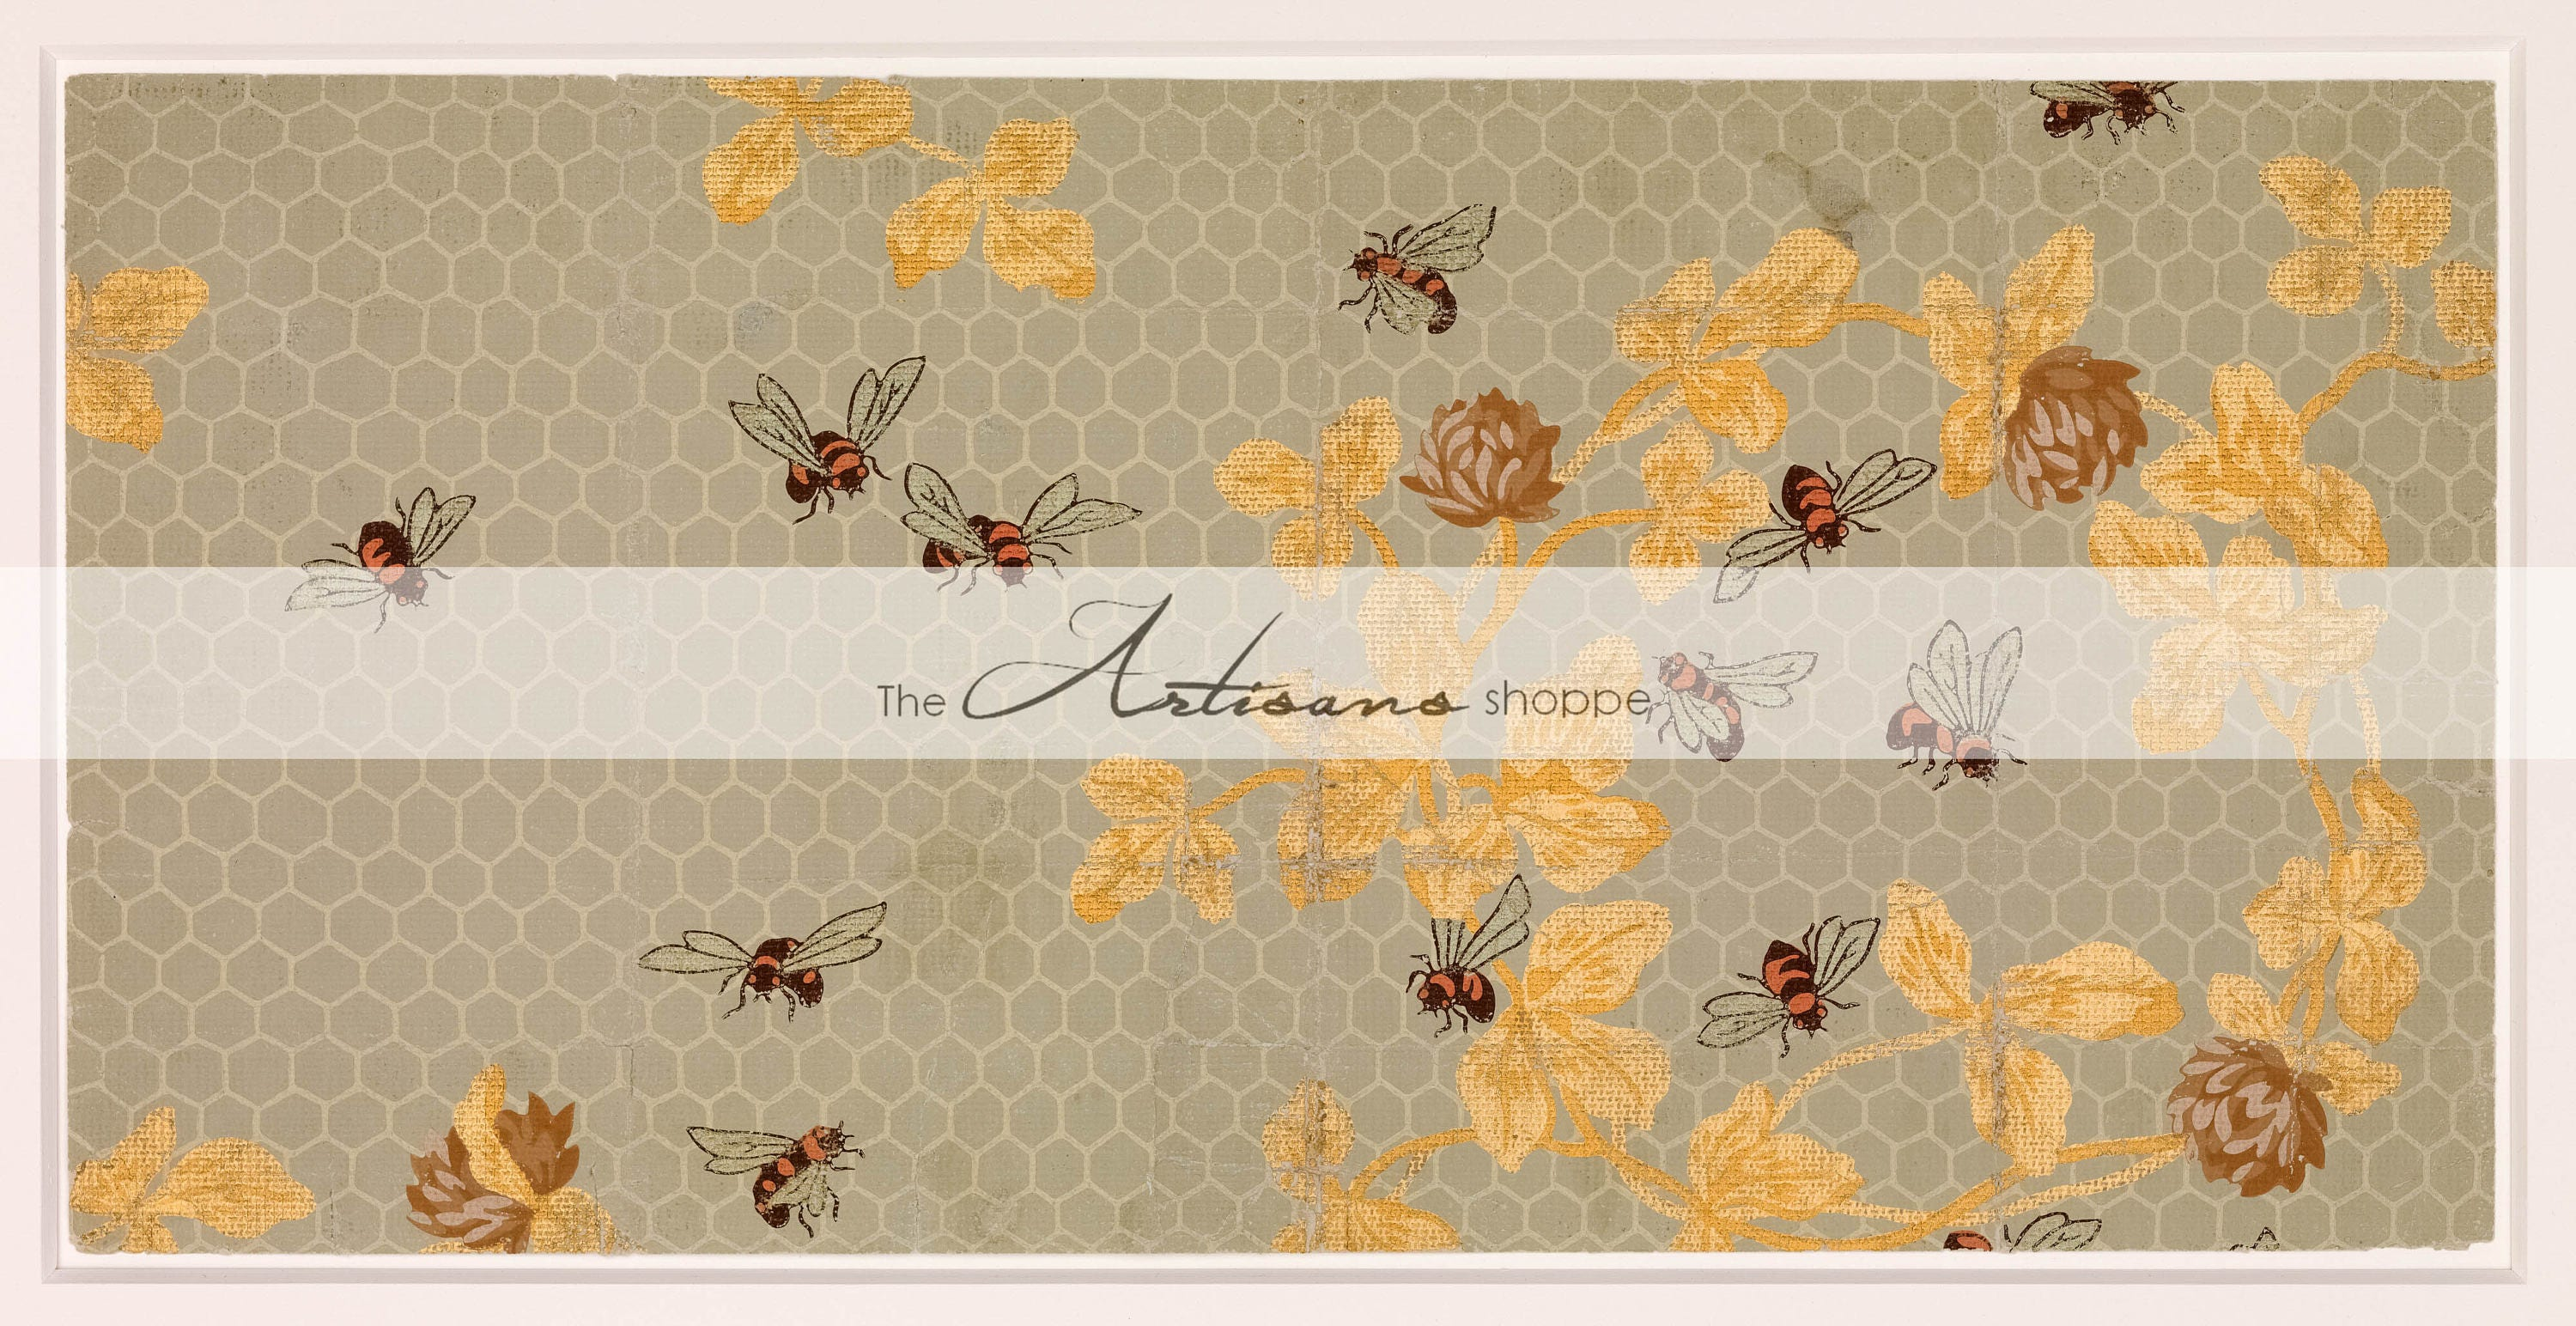 honey bees comb bee antique vintage wallpaper art design image | etsy